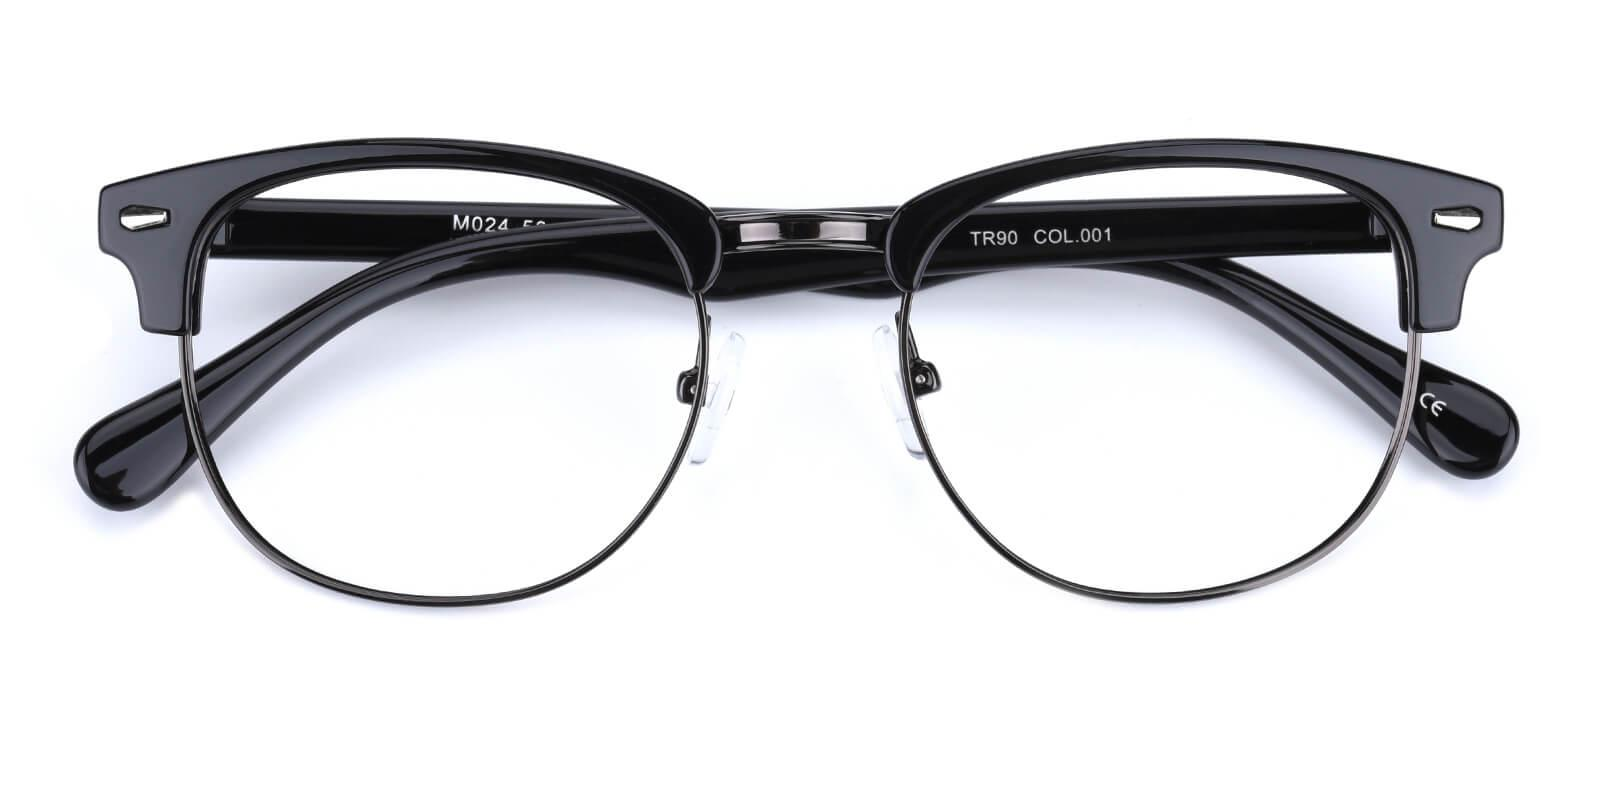 Ferrous-Black-Browline-Combination / Metal / Plastic-Eyeglasses-detail